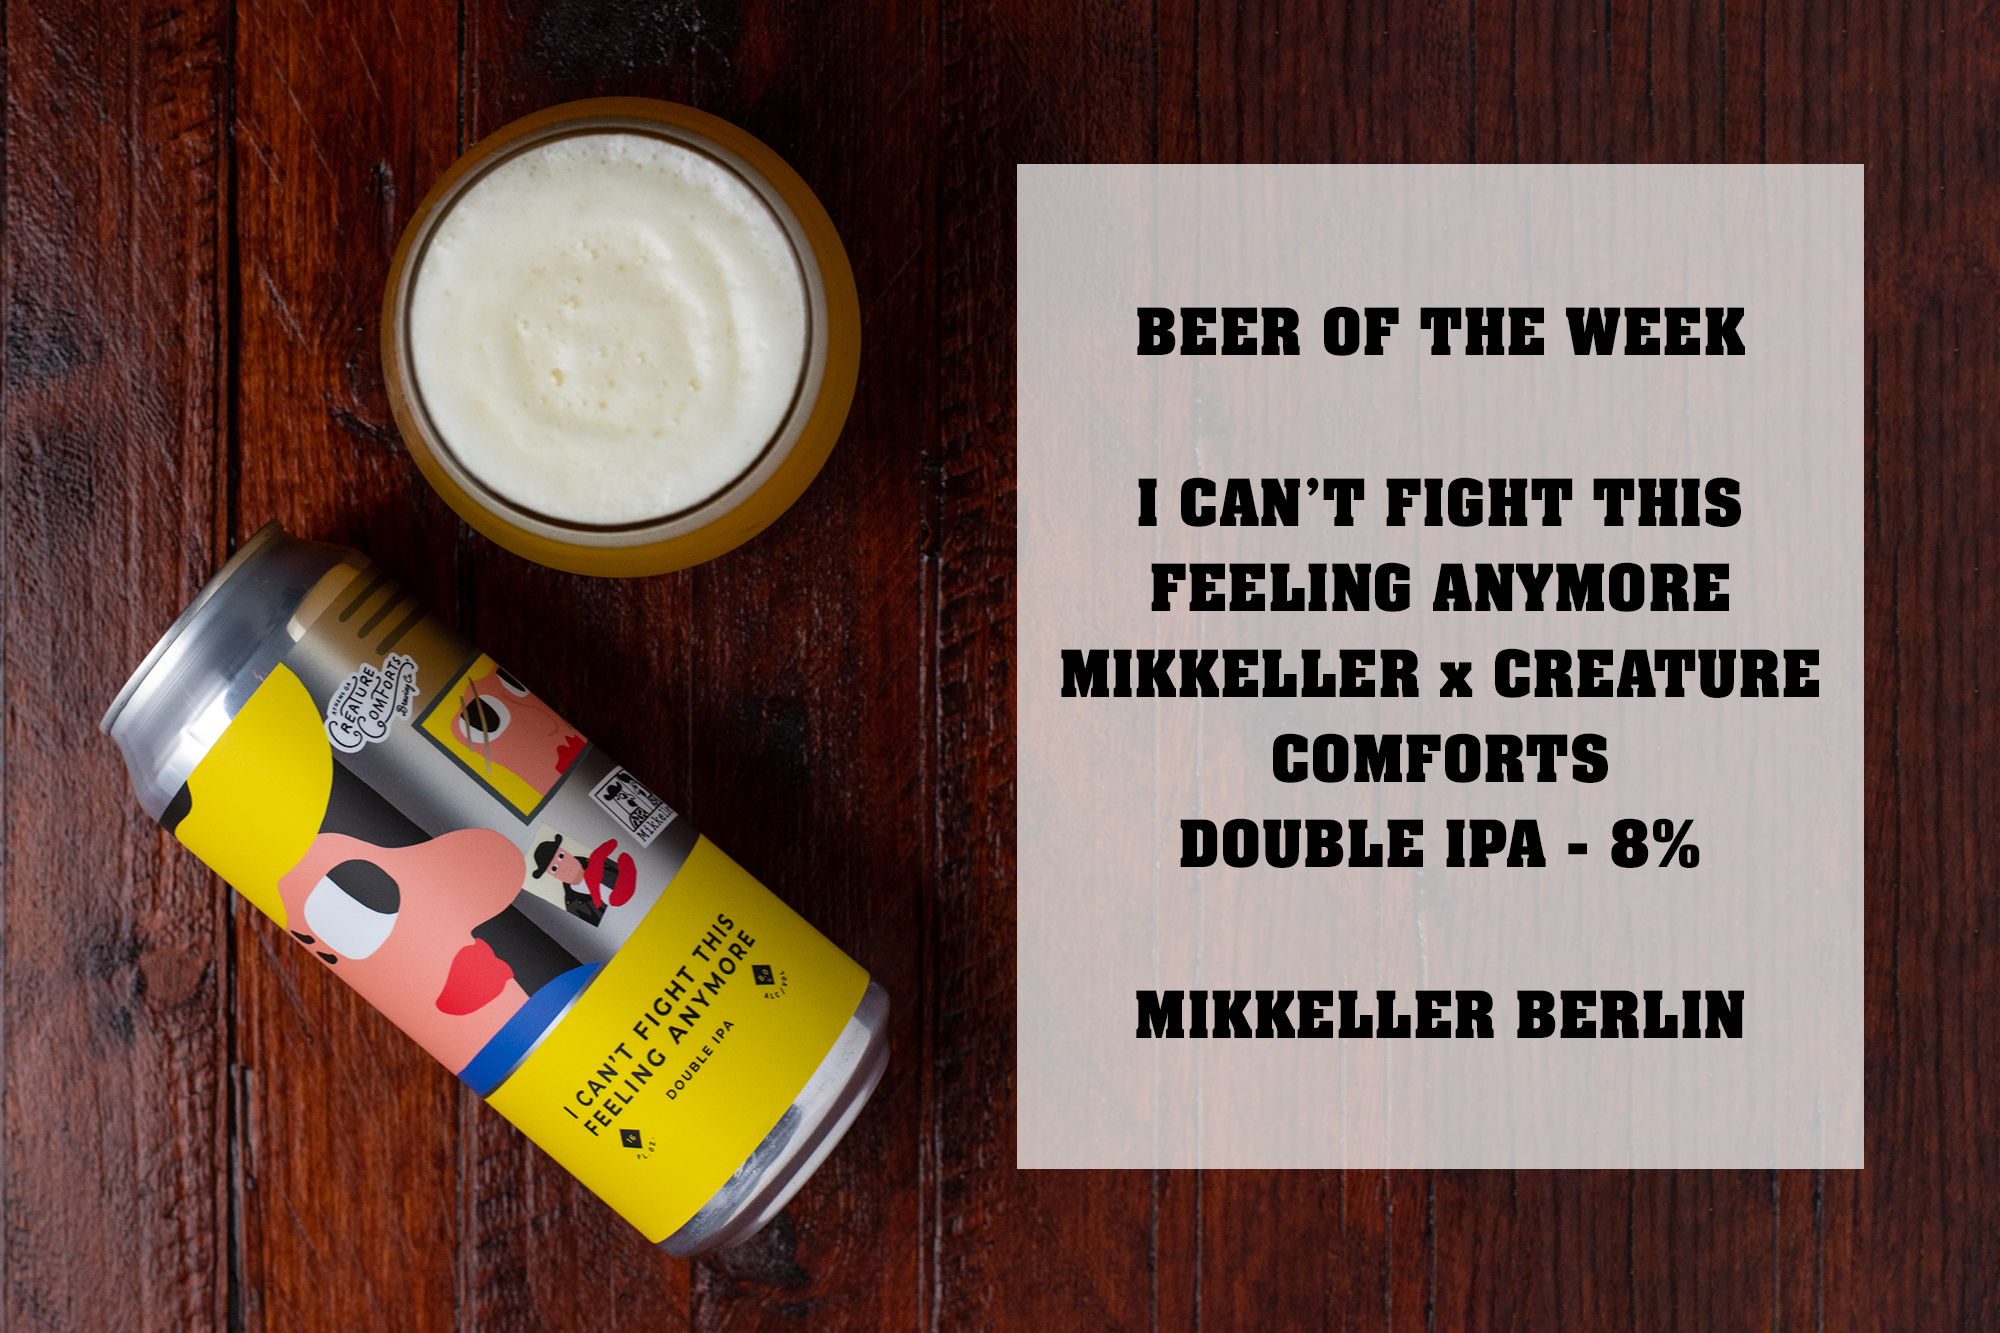 I Can't Fight This Feeling Anymore is an 8% Double IPA from Mikkeller brewed in collaboration with Creature Comforts Brewing Co.